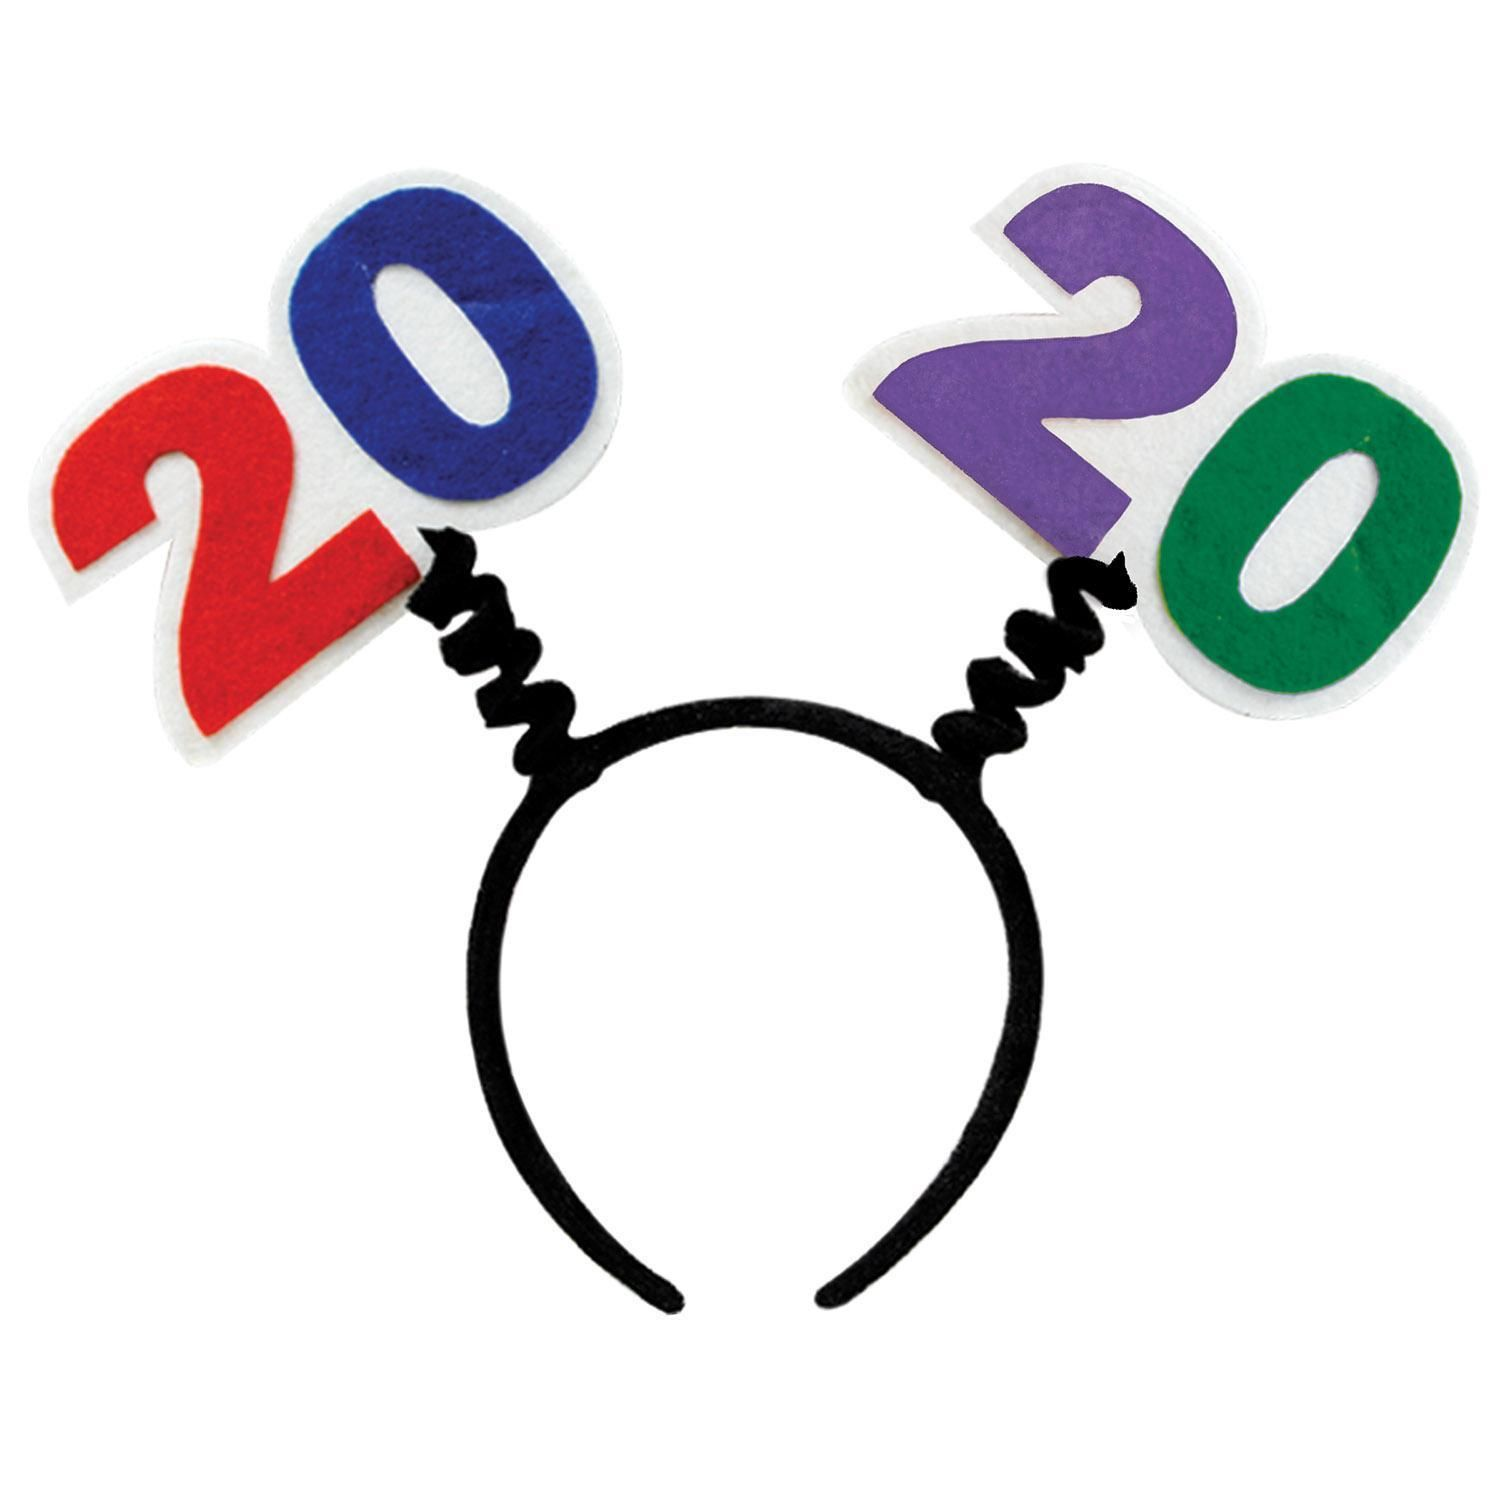 2020 Boppers Beistle Party Supplies New year's eve